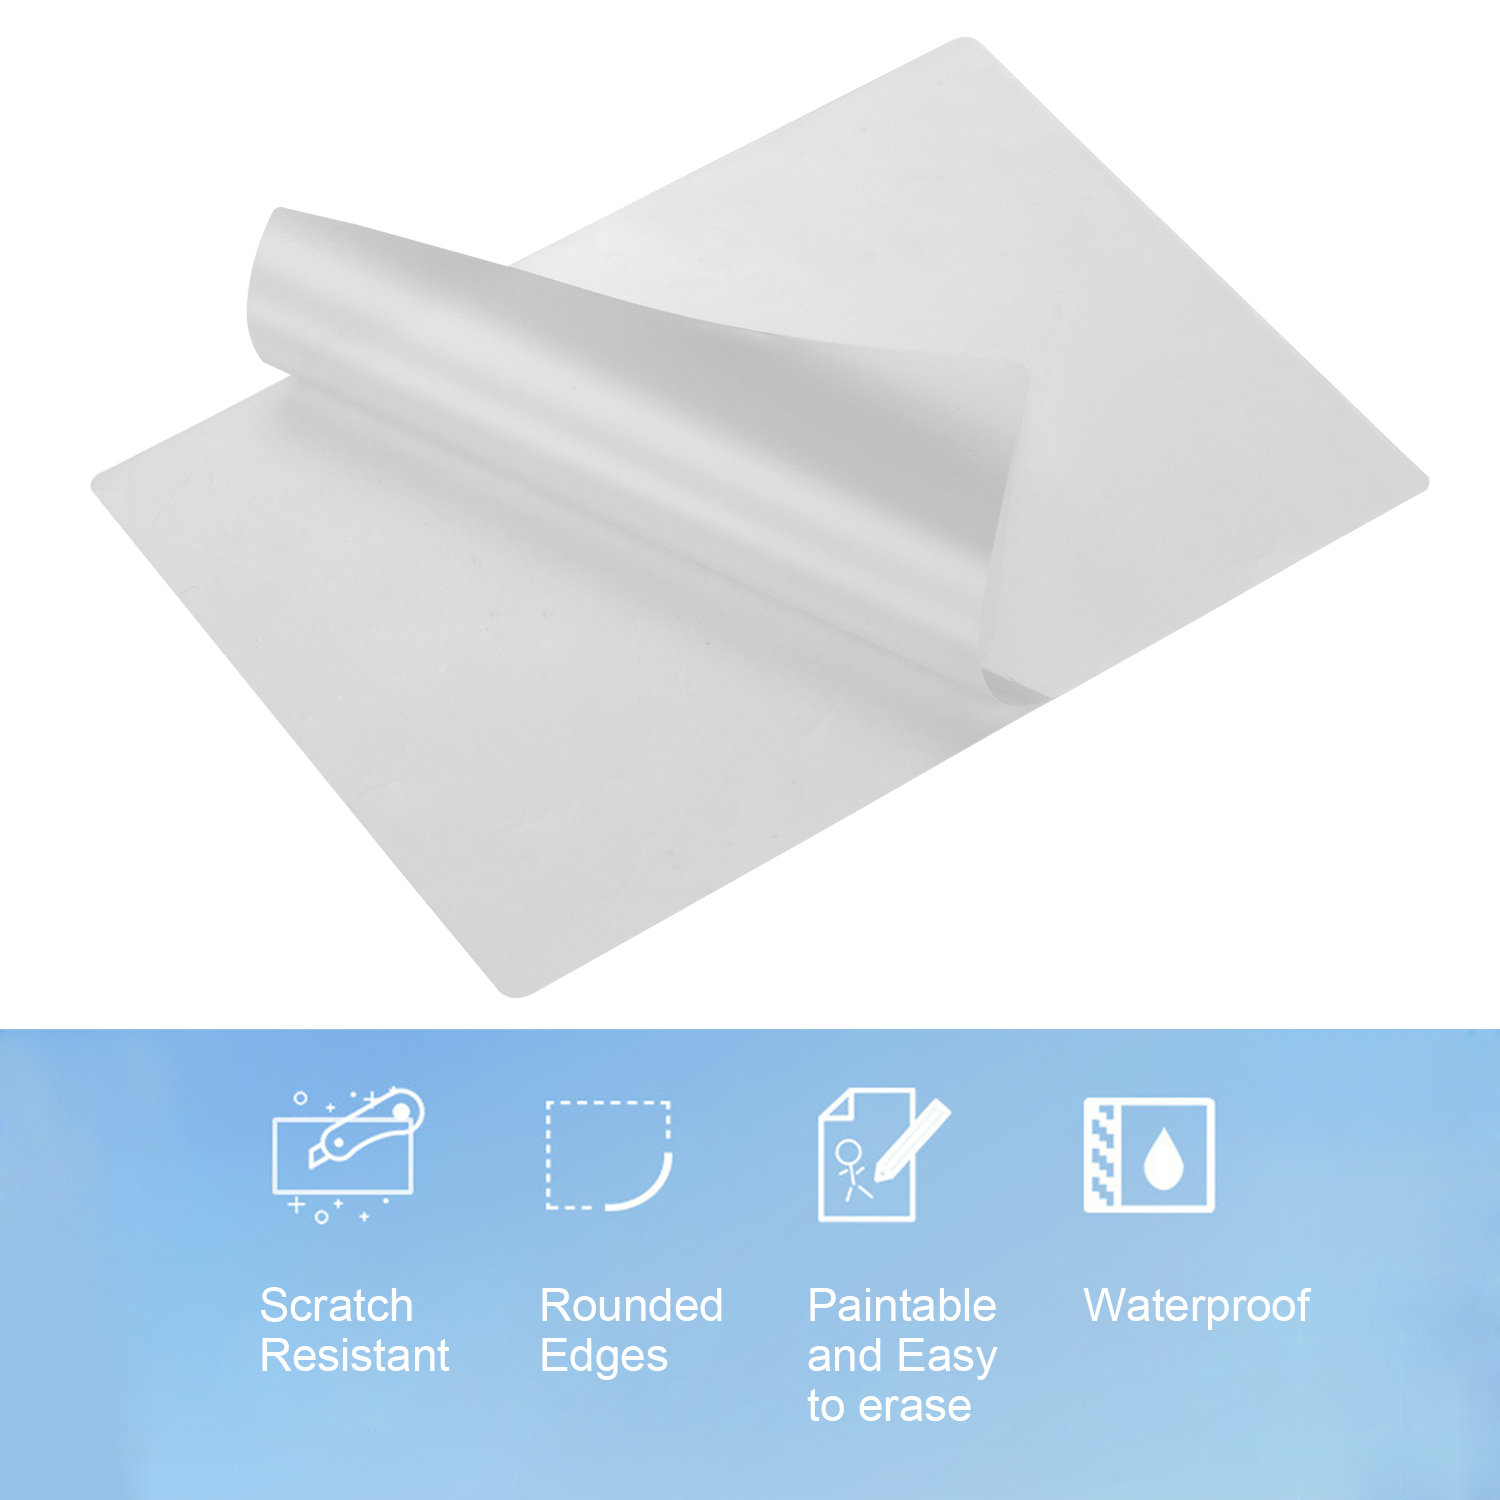 Professional A4 Laminating Pouches Pack of 8 Preserve Protect Important DOCUMENTS Like certificates for a Lifetime